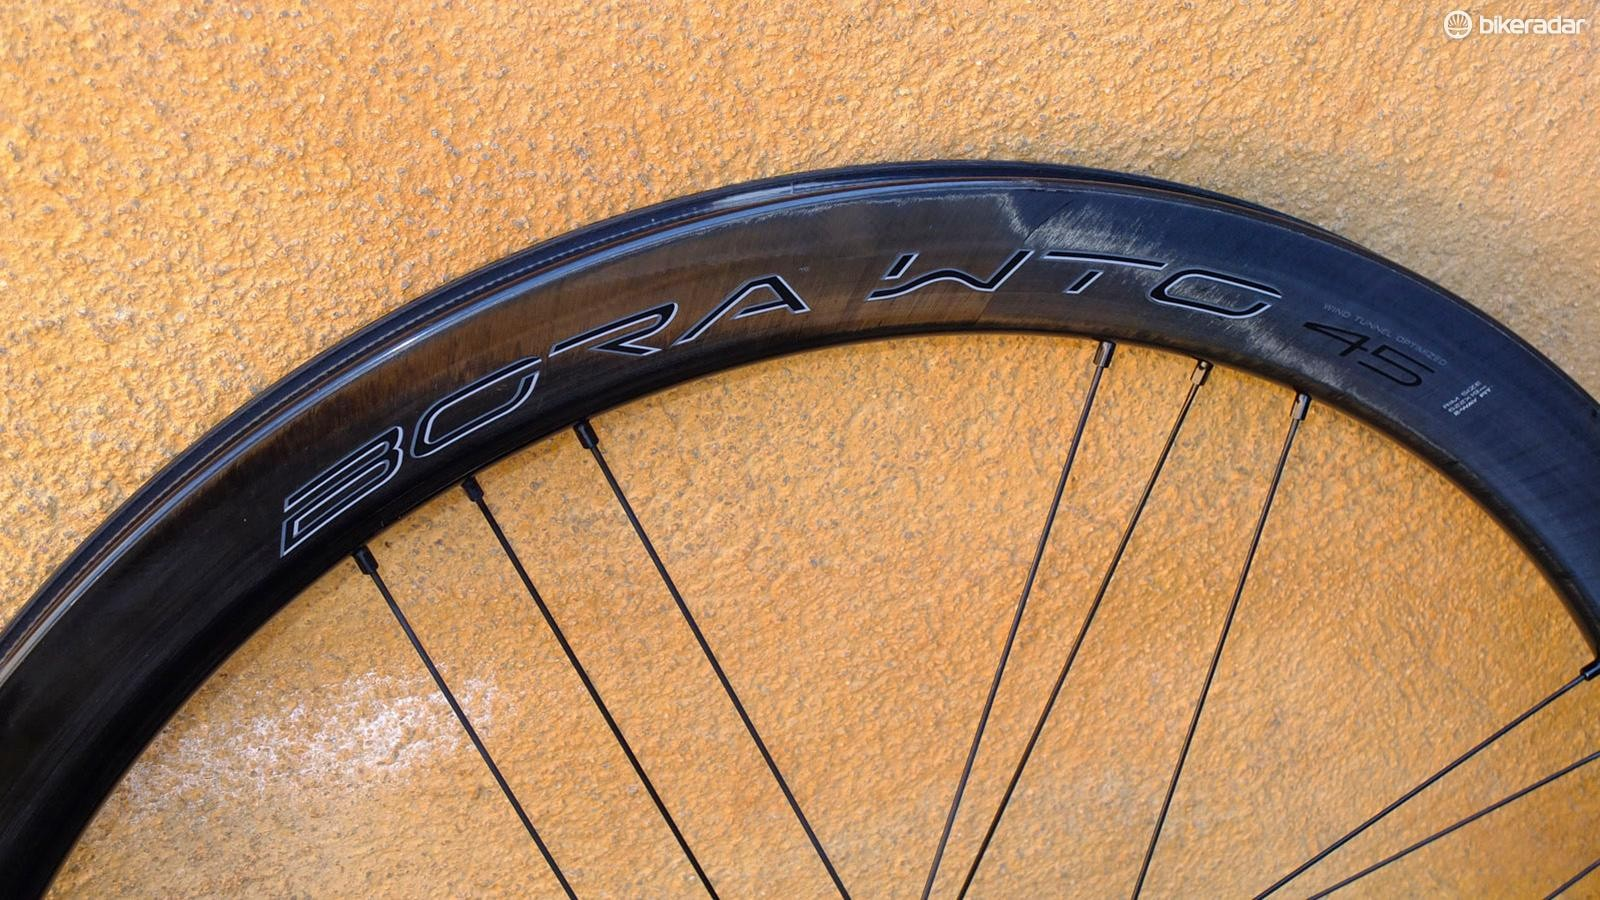 Available in disc or rim brake versions, this is the disc example